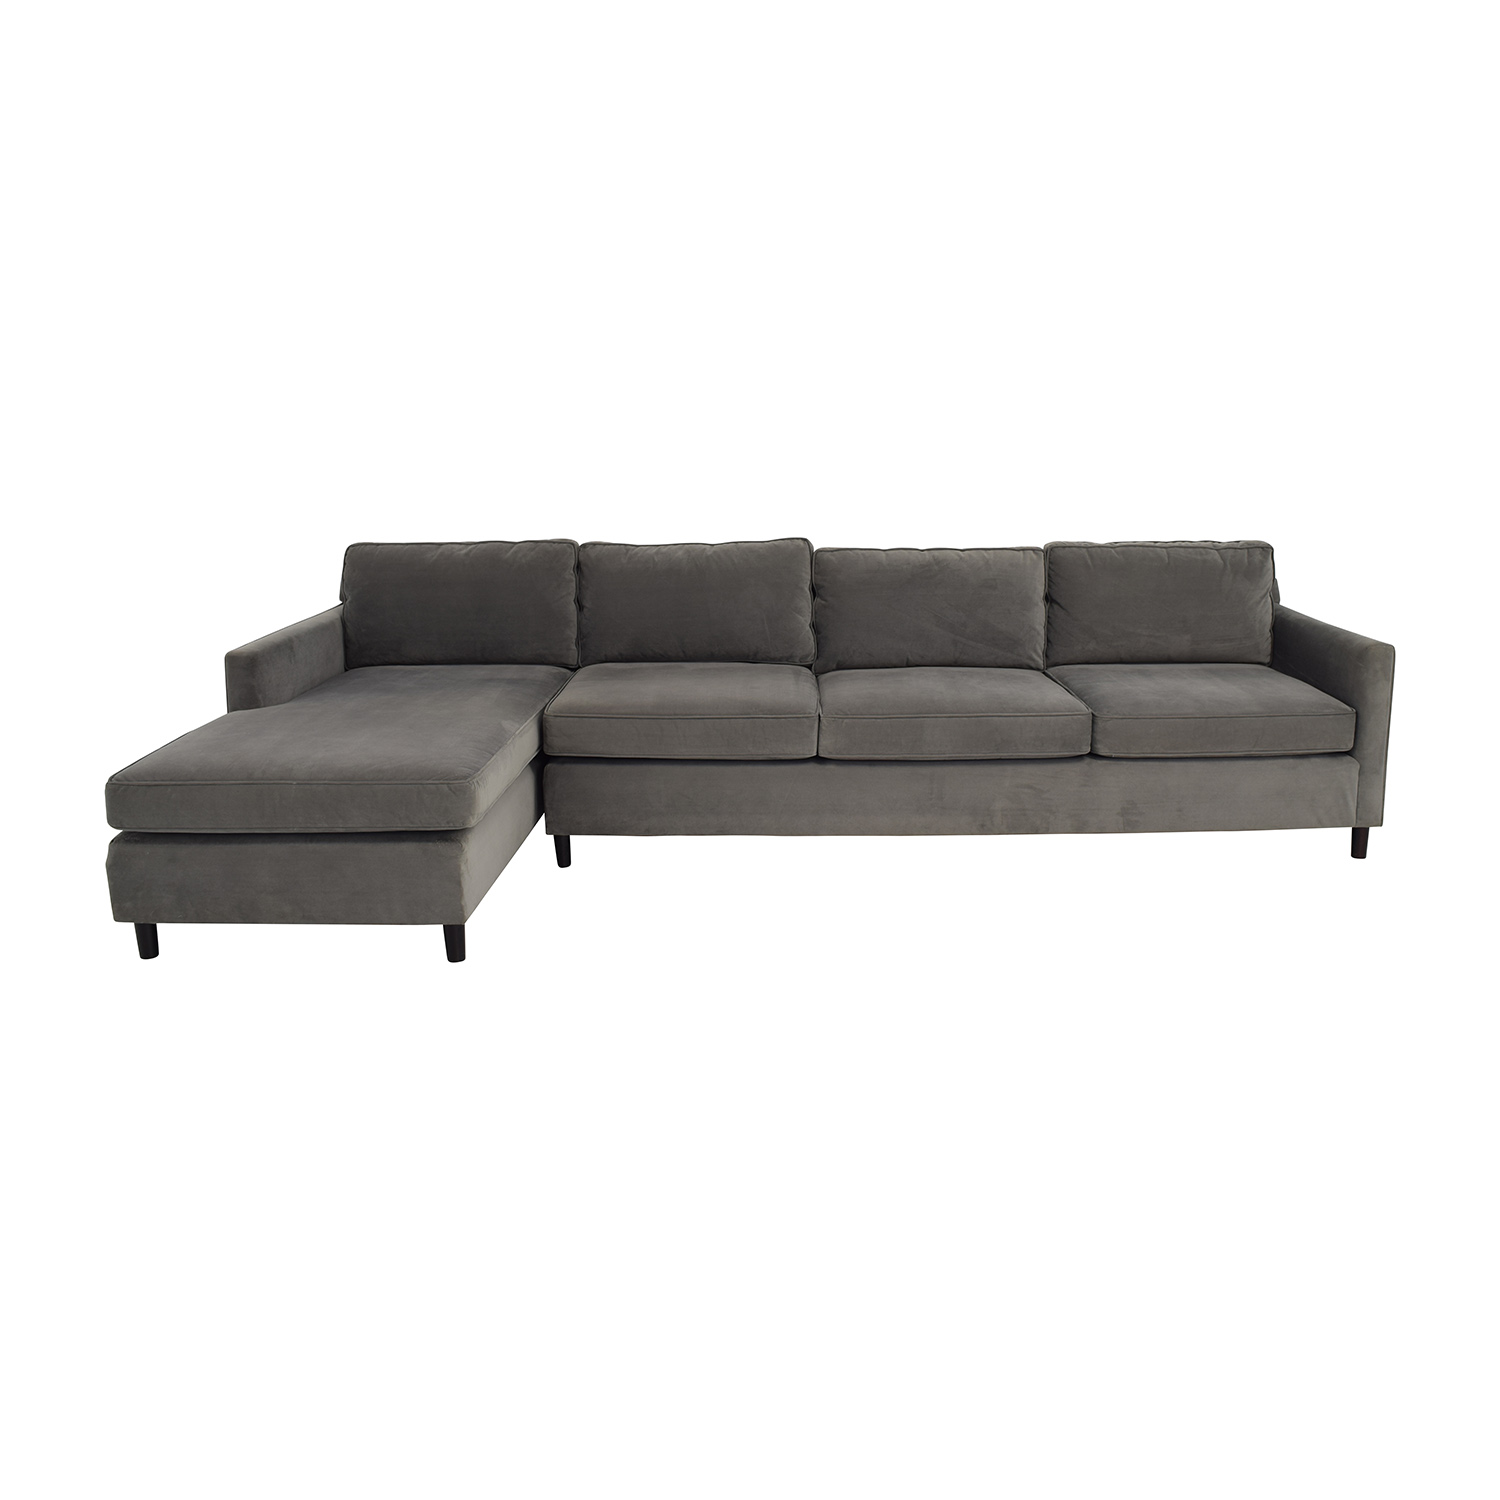 Ordinaire Mitchell Gold U0026 Bob Williams Grey Chaise Sectional Mitchell Gold And Bob  Williams ...